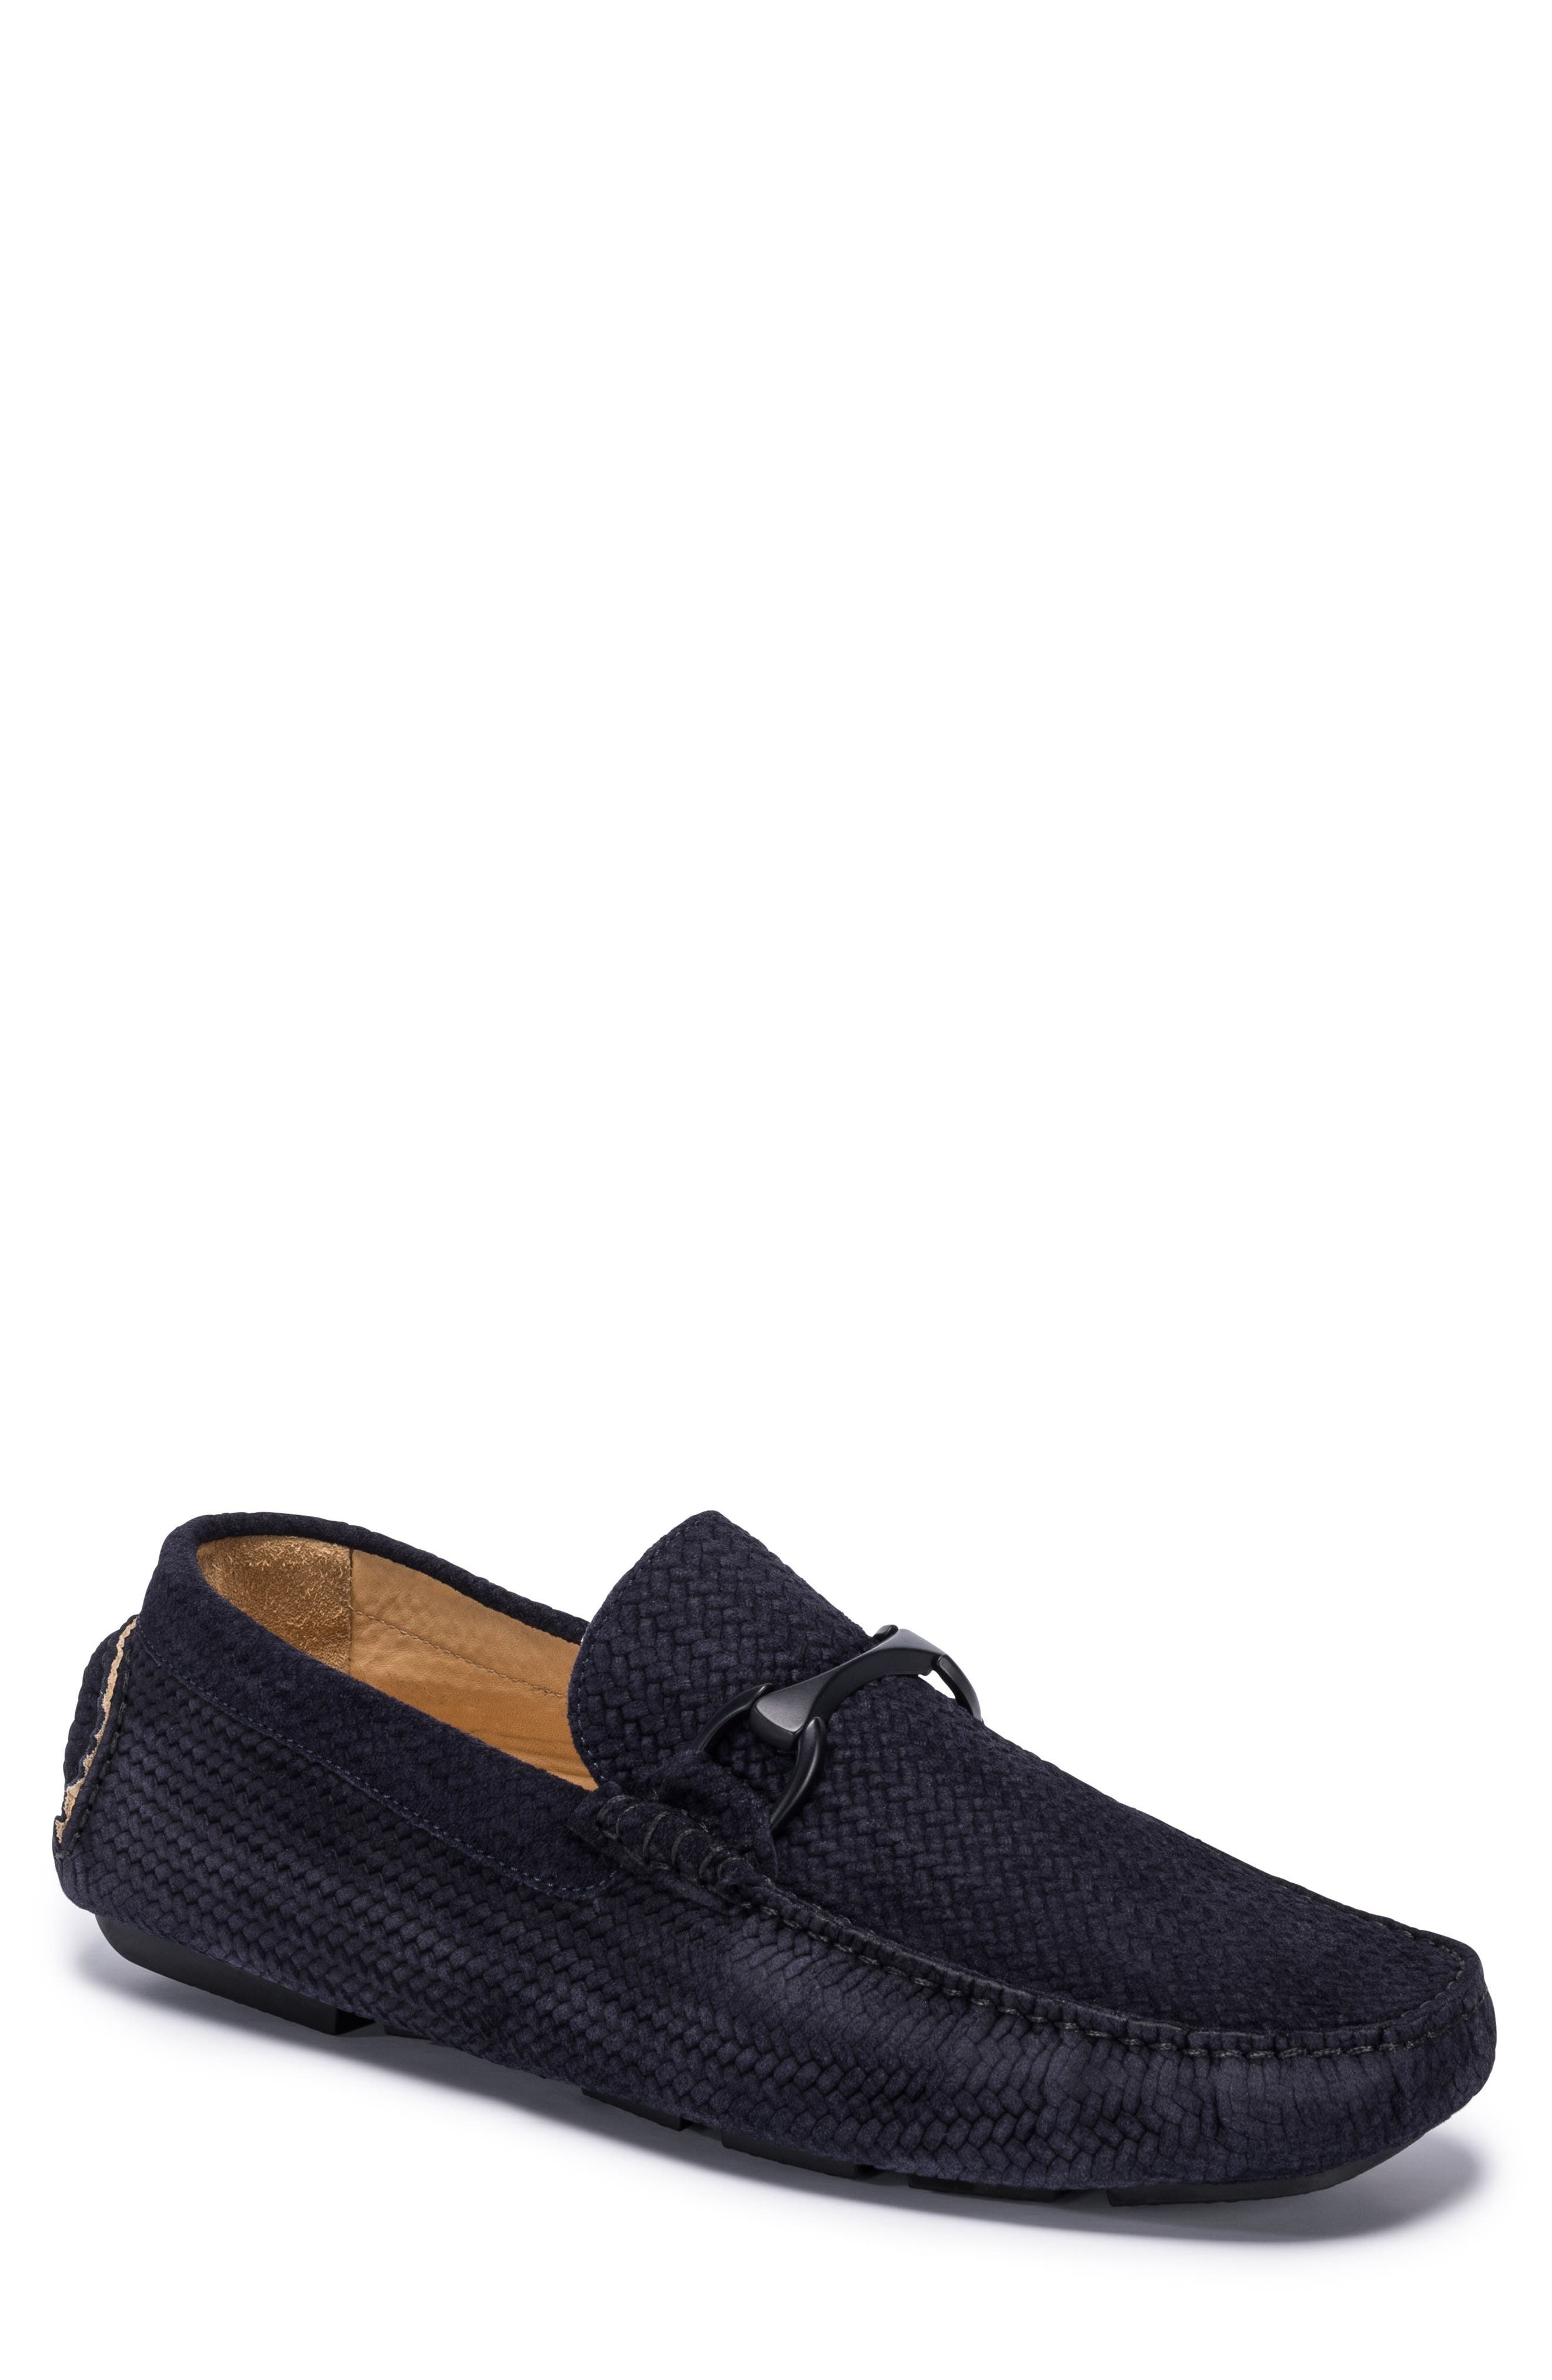 Amalfi Woven Bit Driving Loafer,                         Main,                         color, Blue Suede